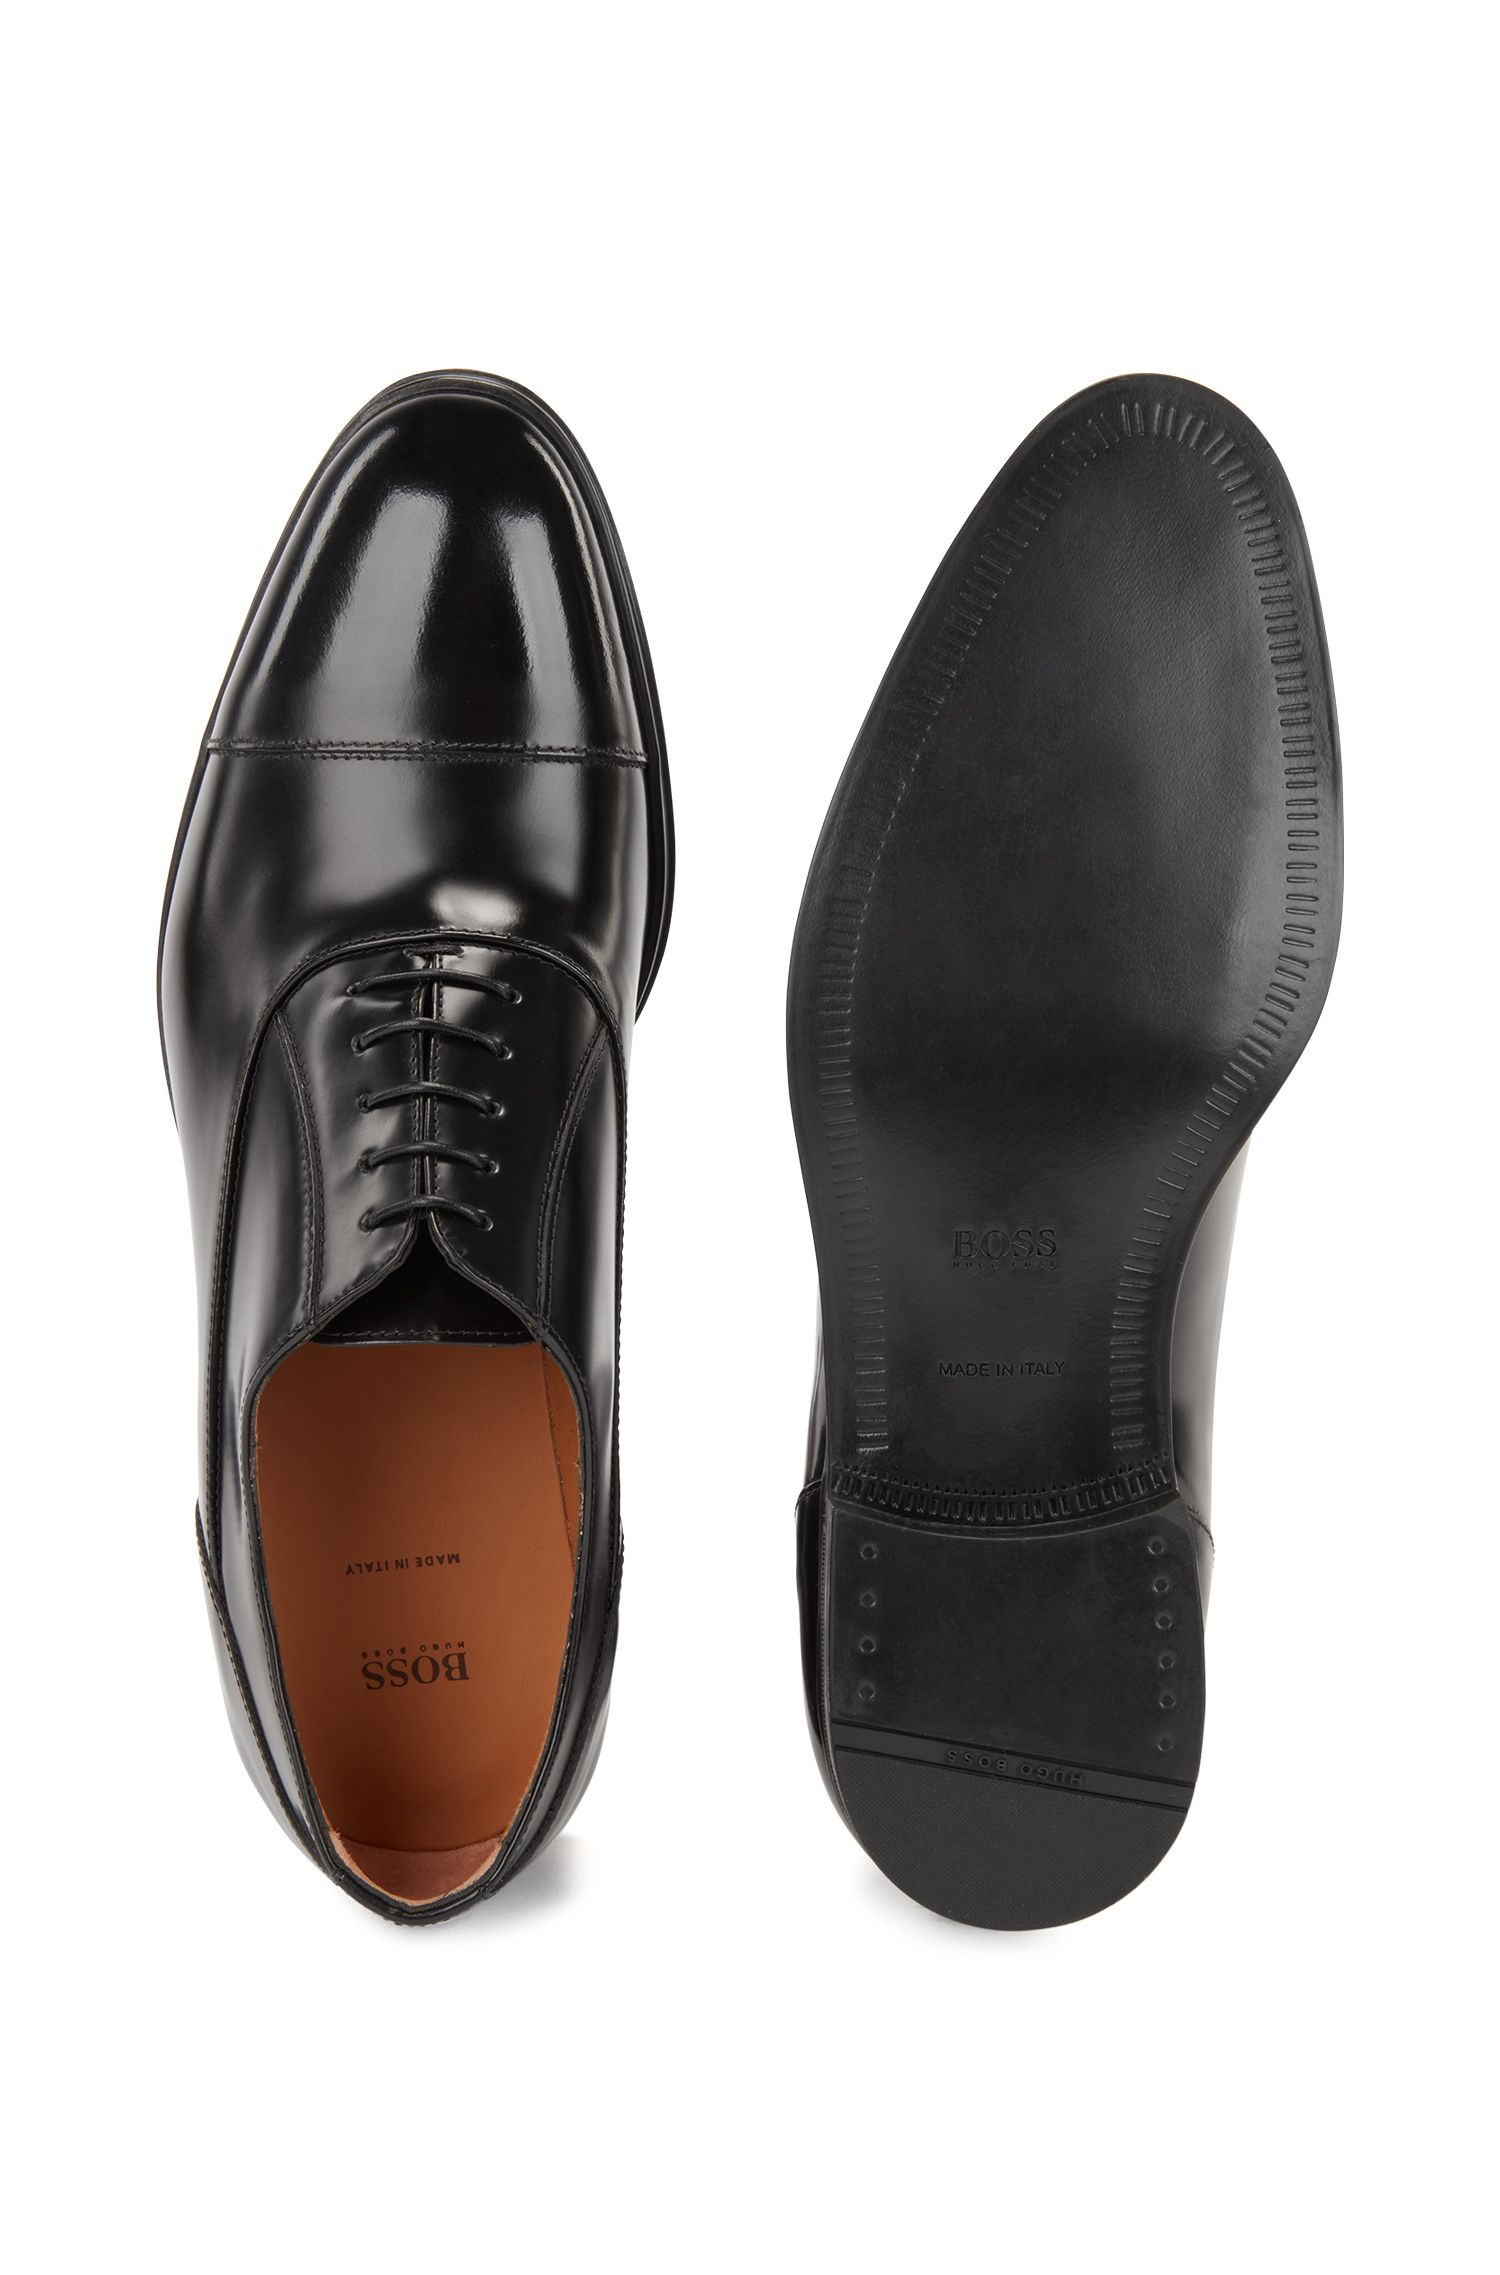 Oxford shoes in brush-off patent calf leather